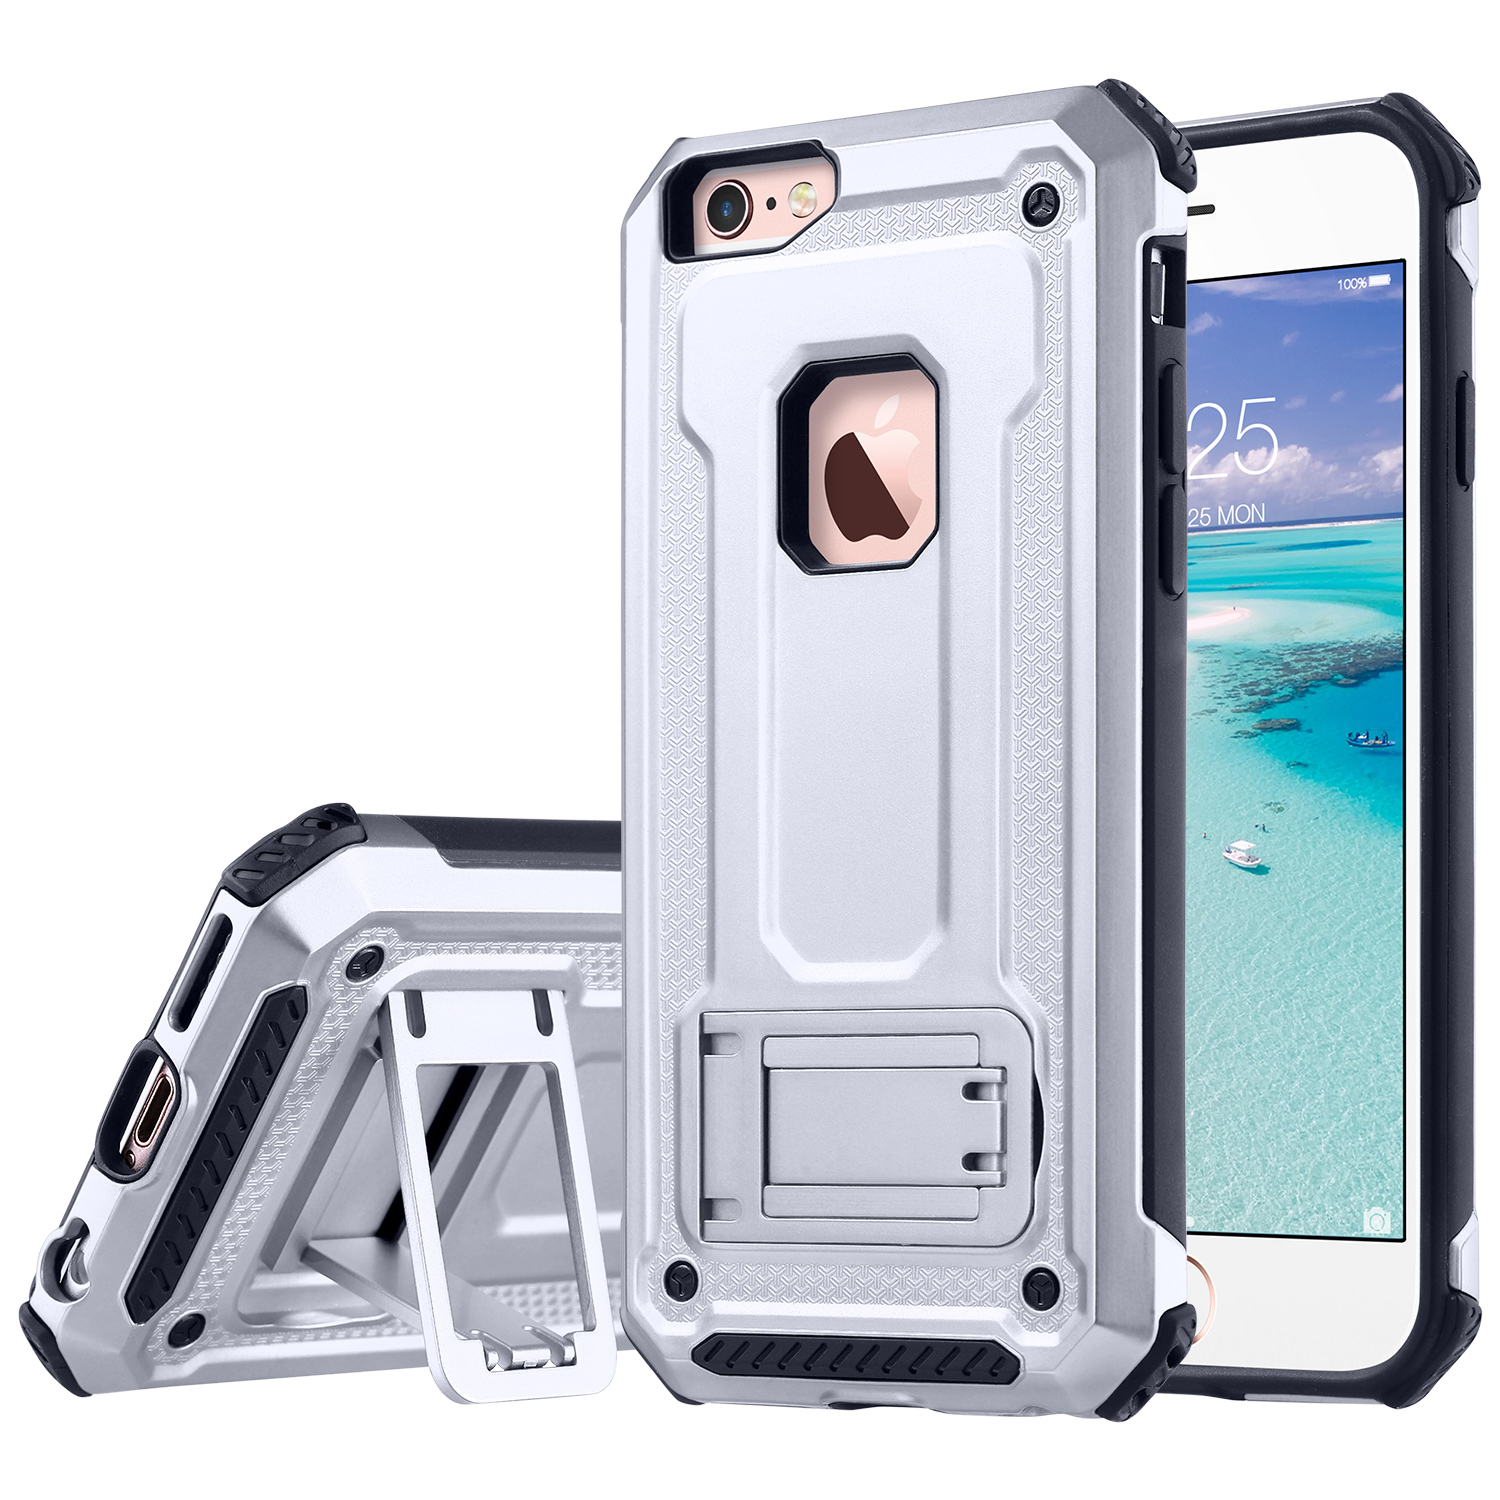 iPhone 6 Case, iPhone 6s Case, ULAK Hybrid Shock Absorbing TPU Hard Cover with Built-in Stand for Apple iPhone 6 & 6S 4.7 inch